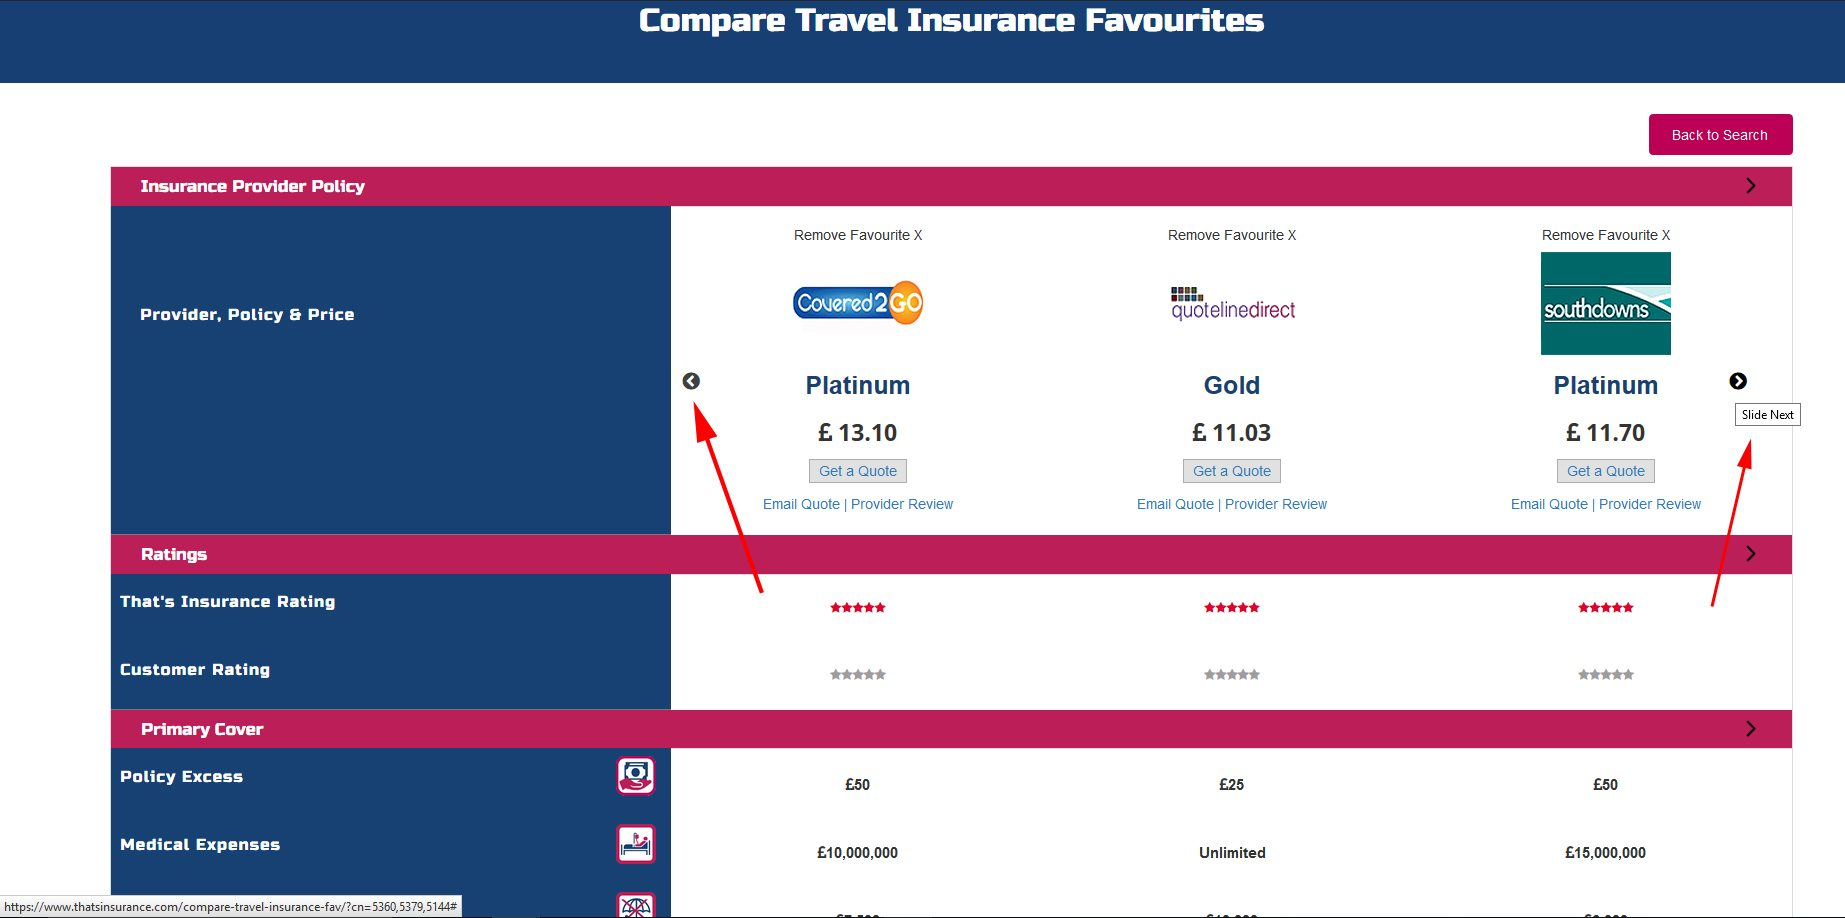 Compare your Favourite Insurance Policies